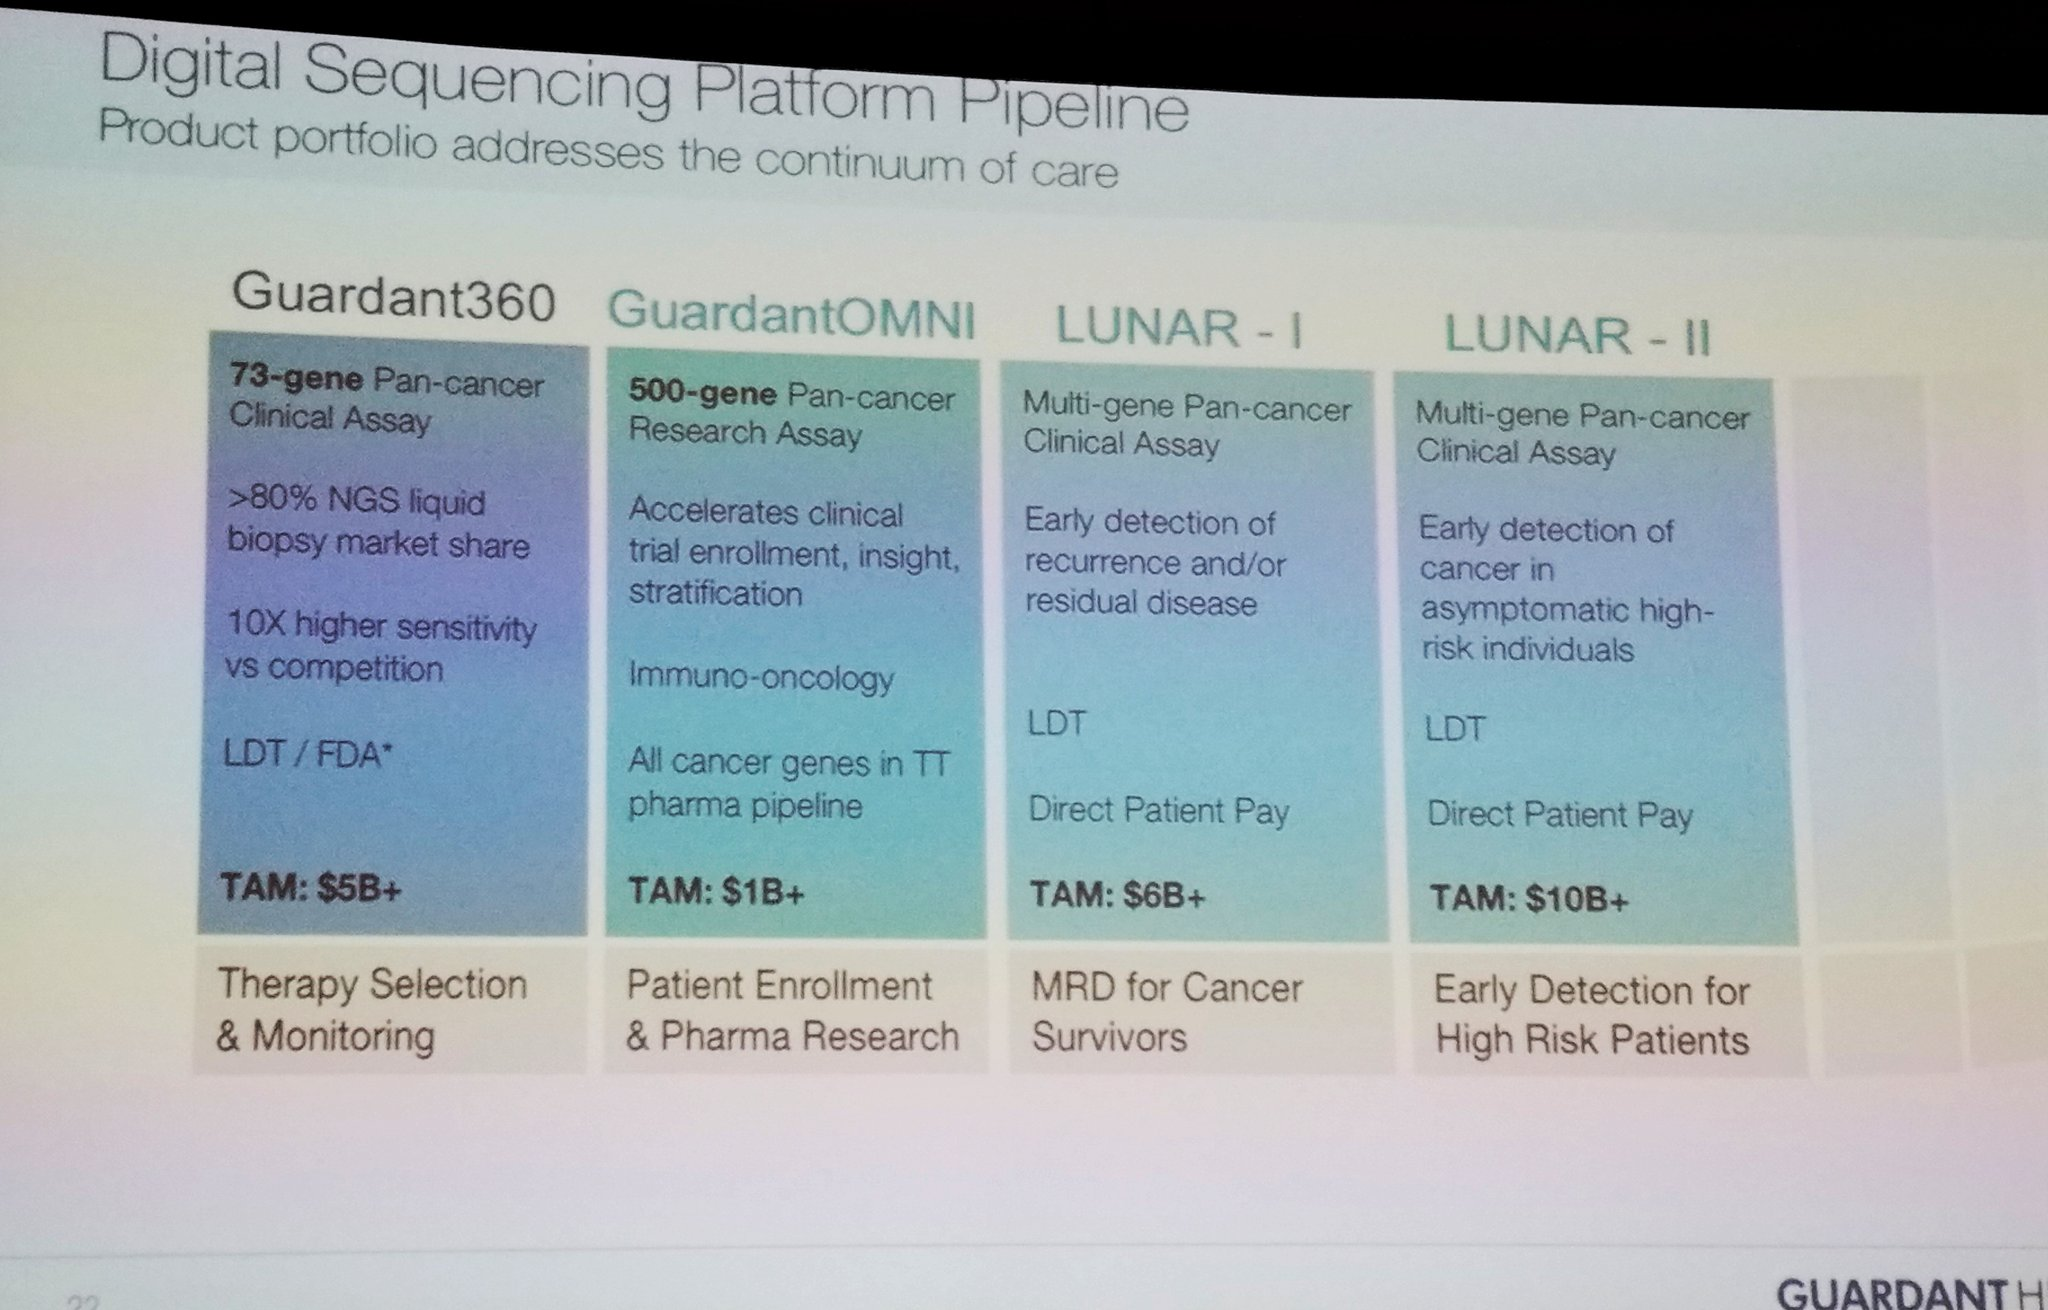 @GuardantHealth #LiquidBiopsy portfolio across early detection (LUNAR II),diagnosis,monitoring/recurrence, #ClinicalTrial enrollment #PMWC17 https://t.co/mORrZuMlxC